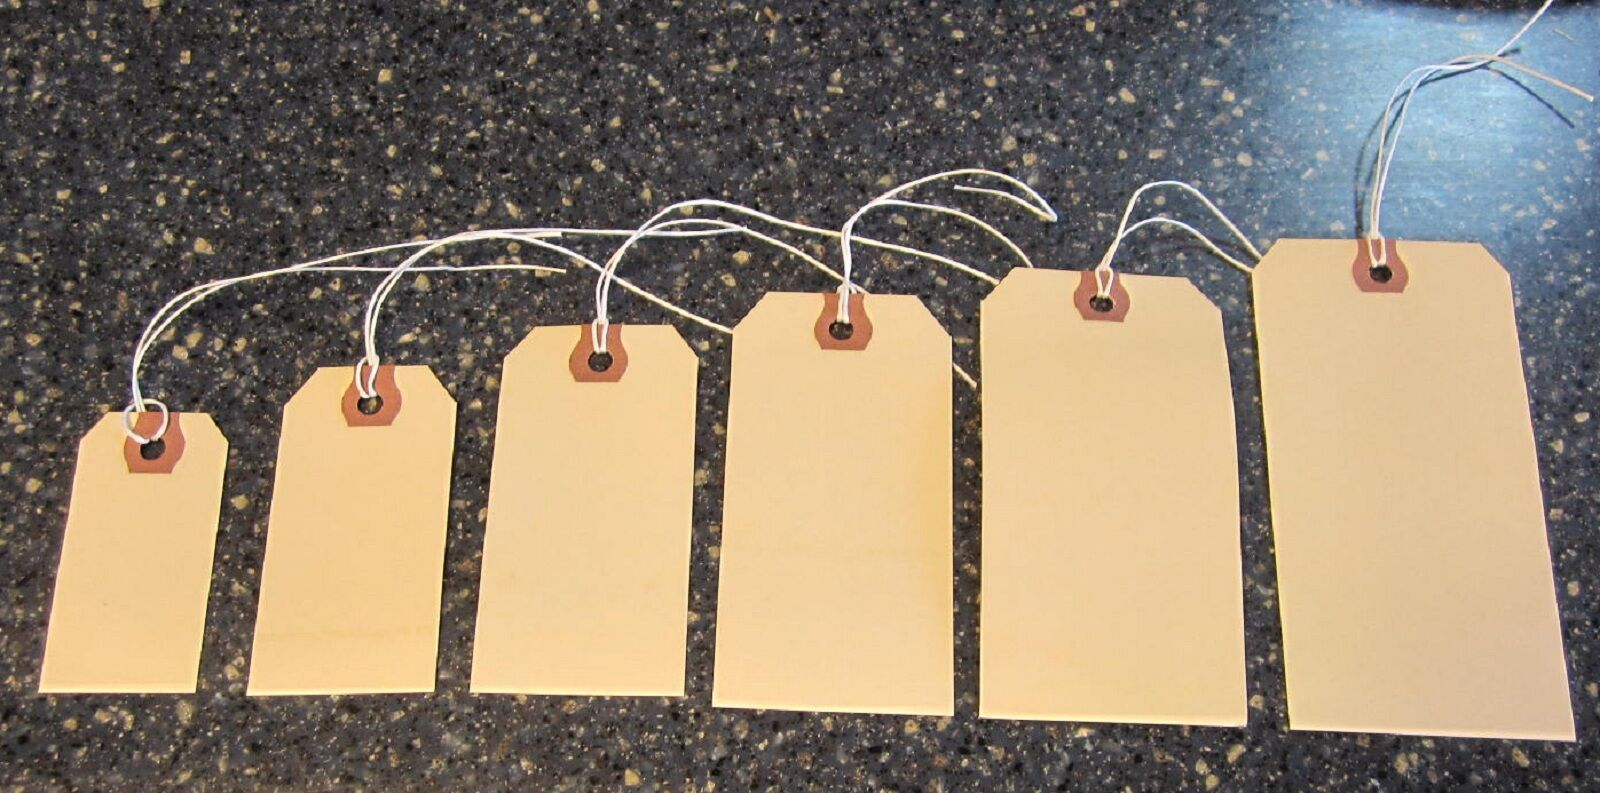 125 Avery Manilla Pre Strung Shipping Hang Tags Scrapbook Inventory String Label